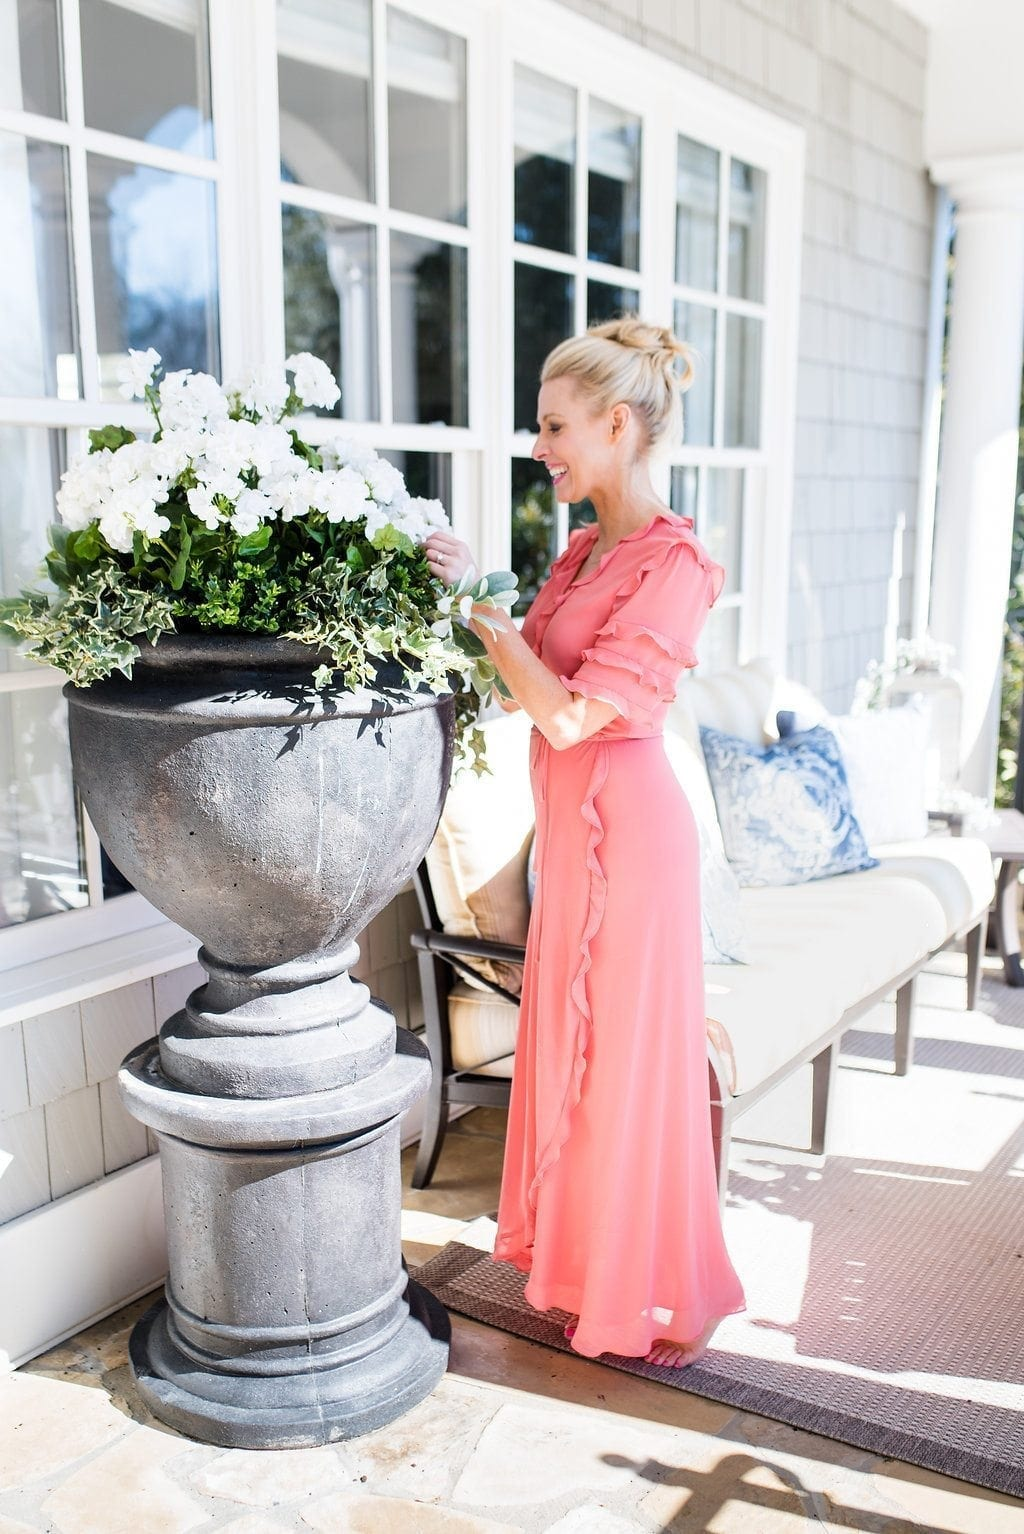 Tips to use fake flowers outside without anyone knowing!